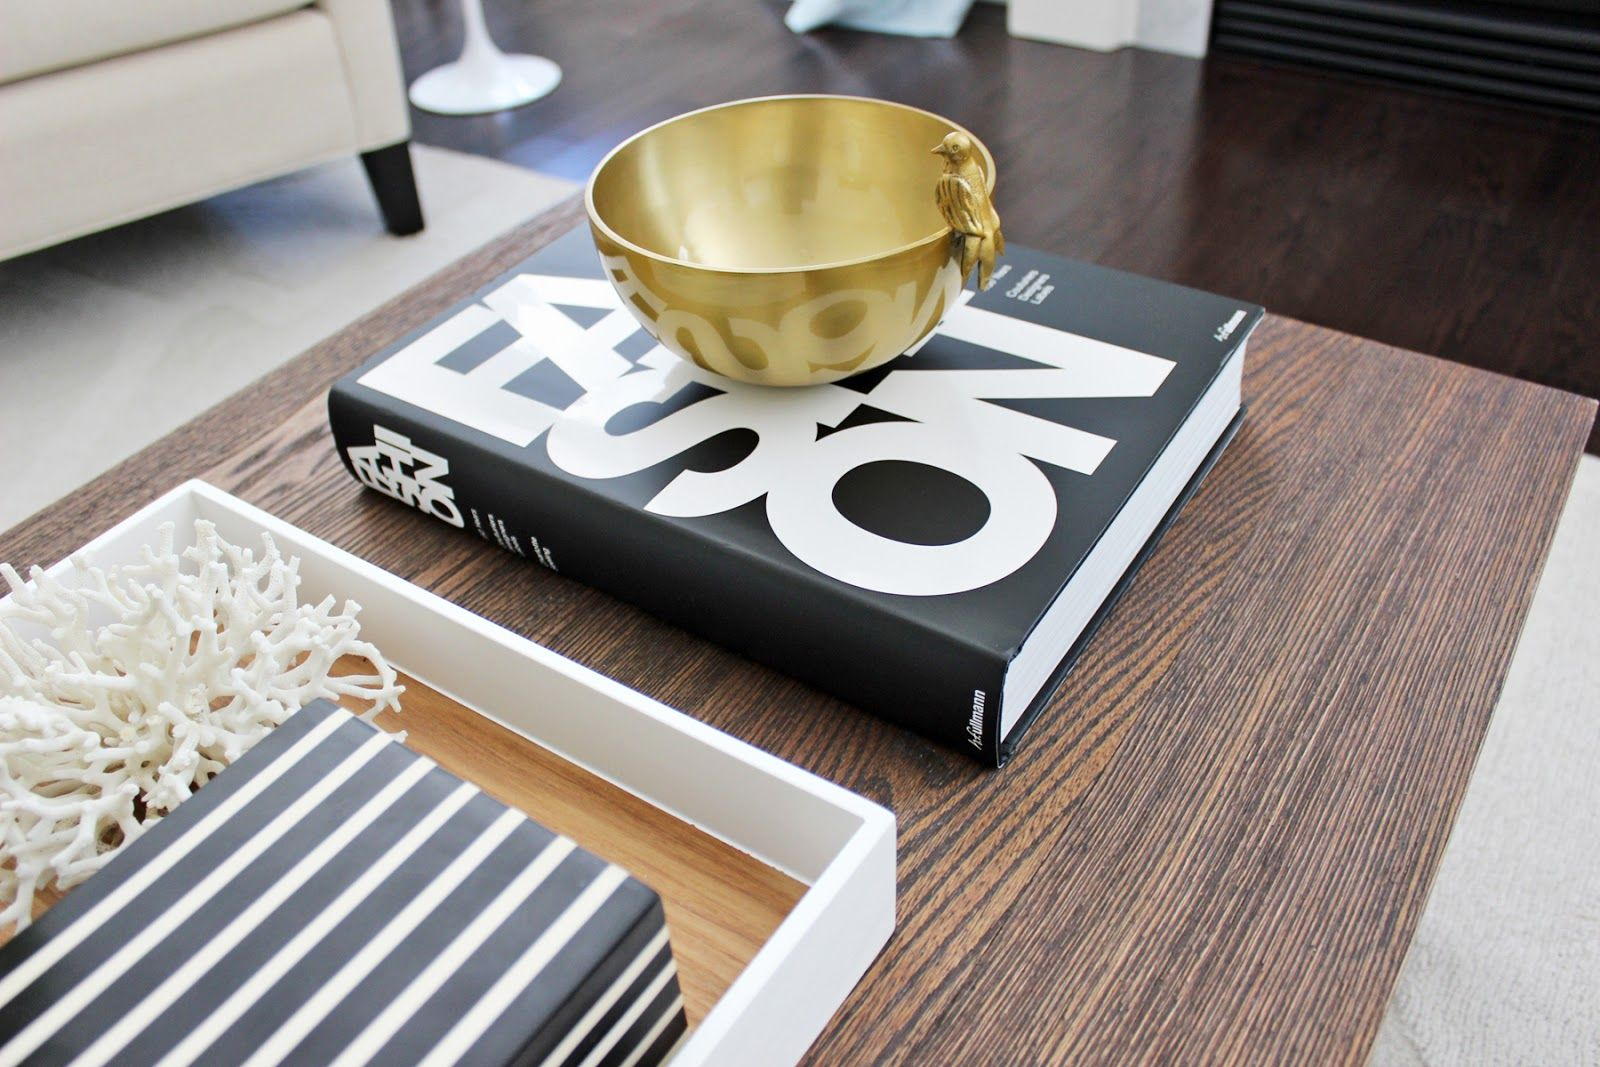 25 Books That Will Make Your Coffee Table Look Good Best